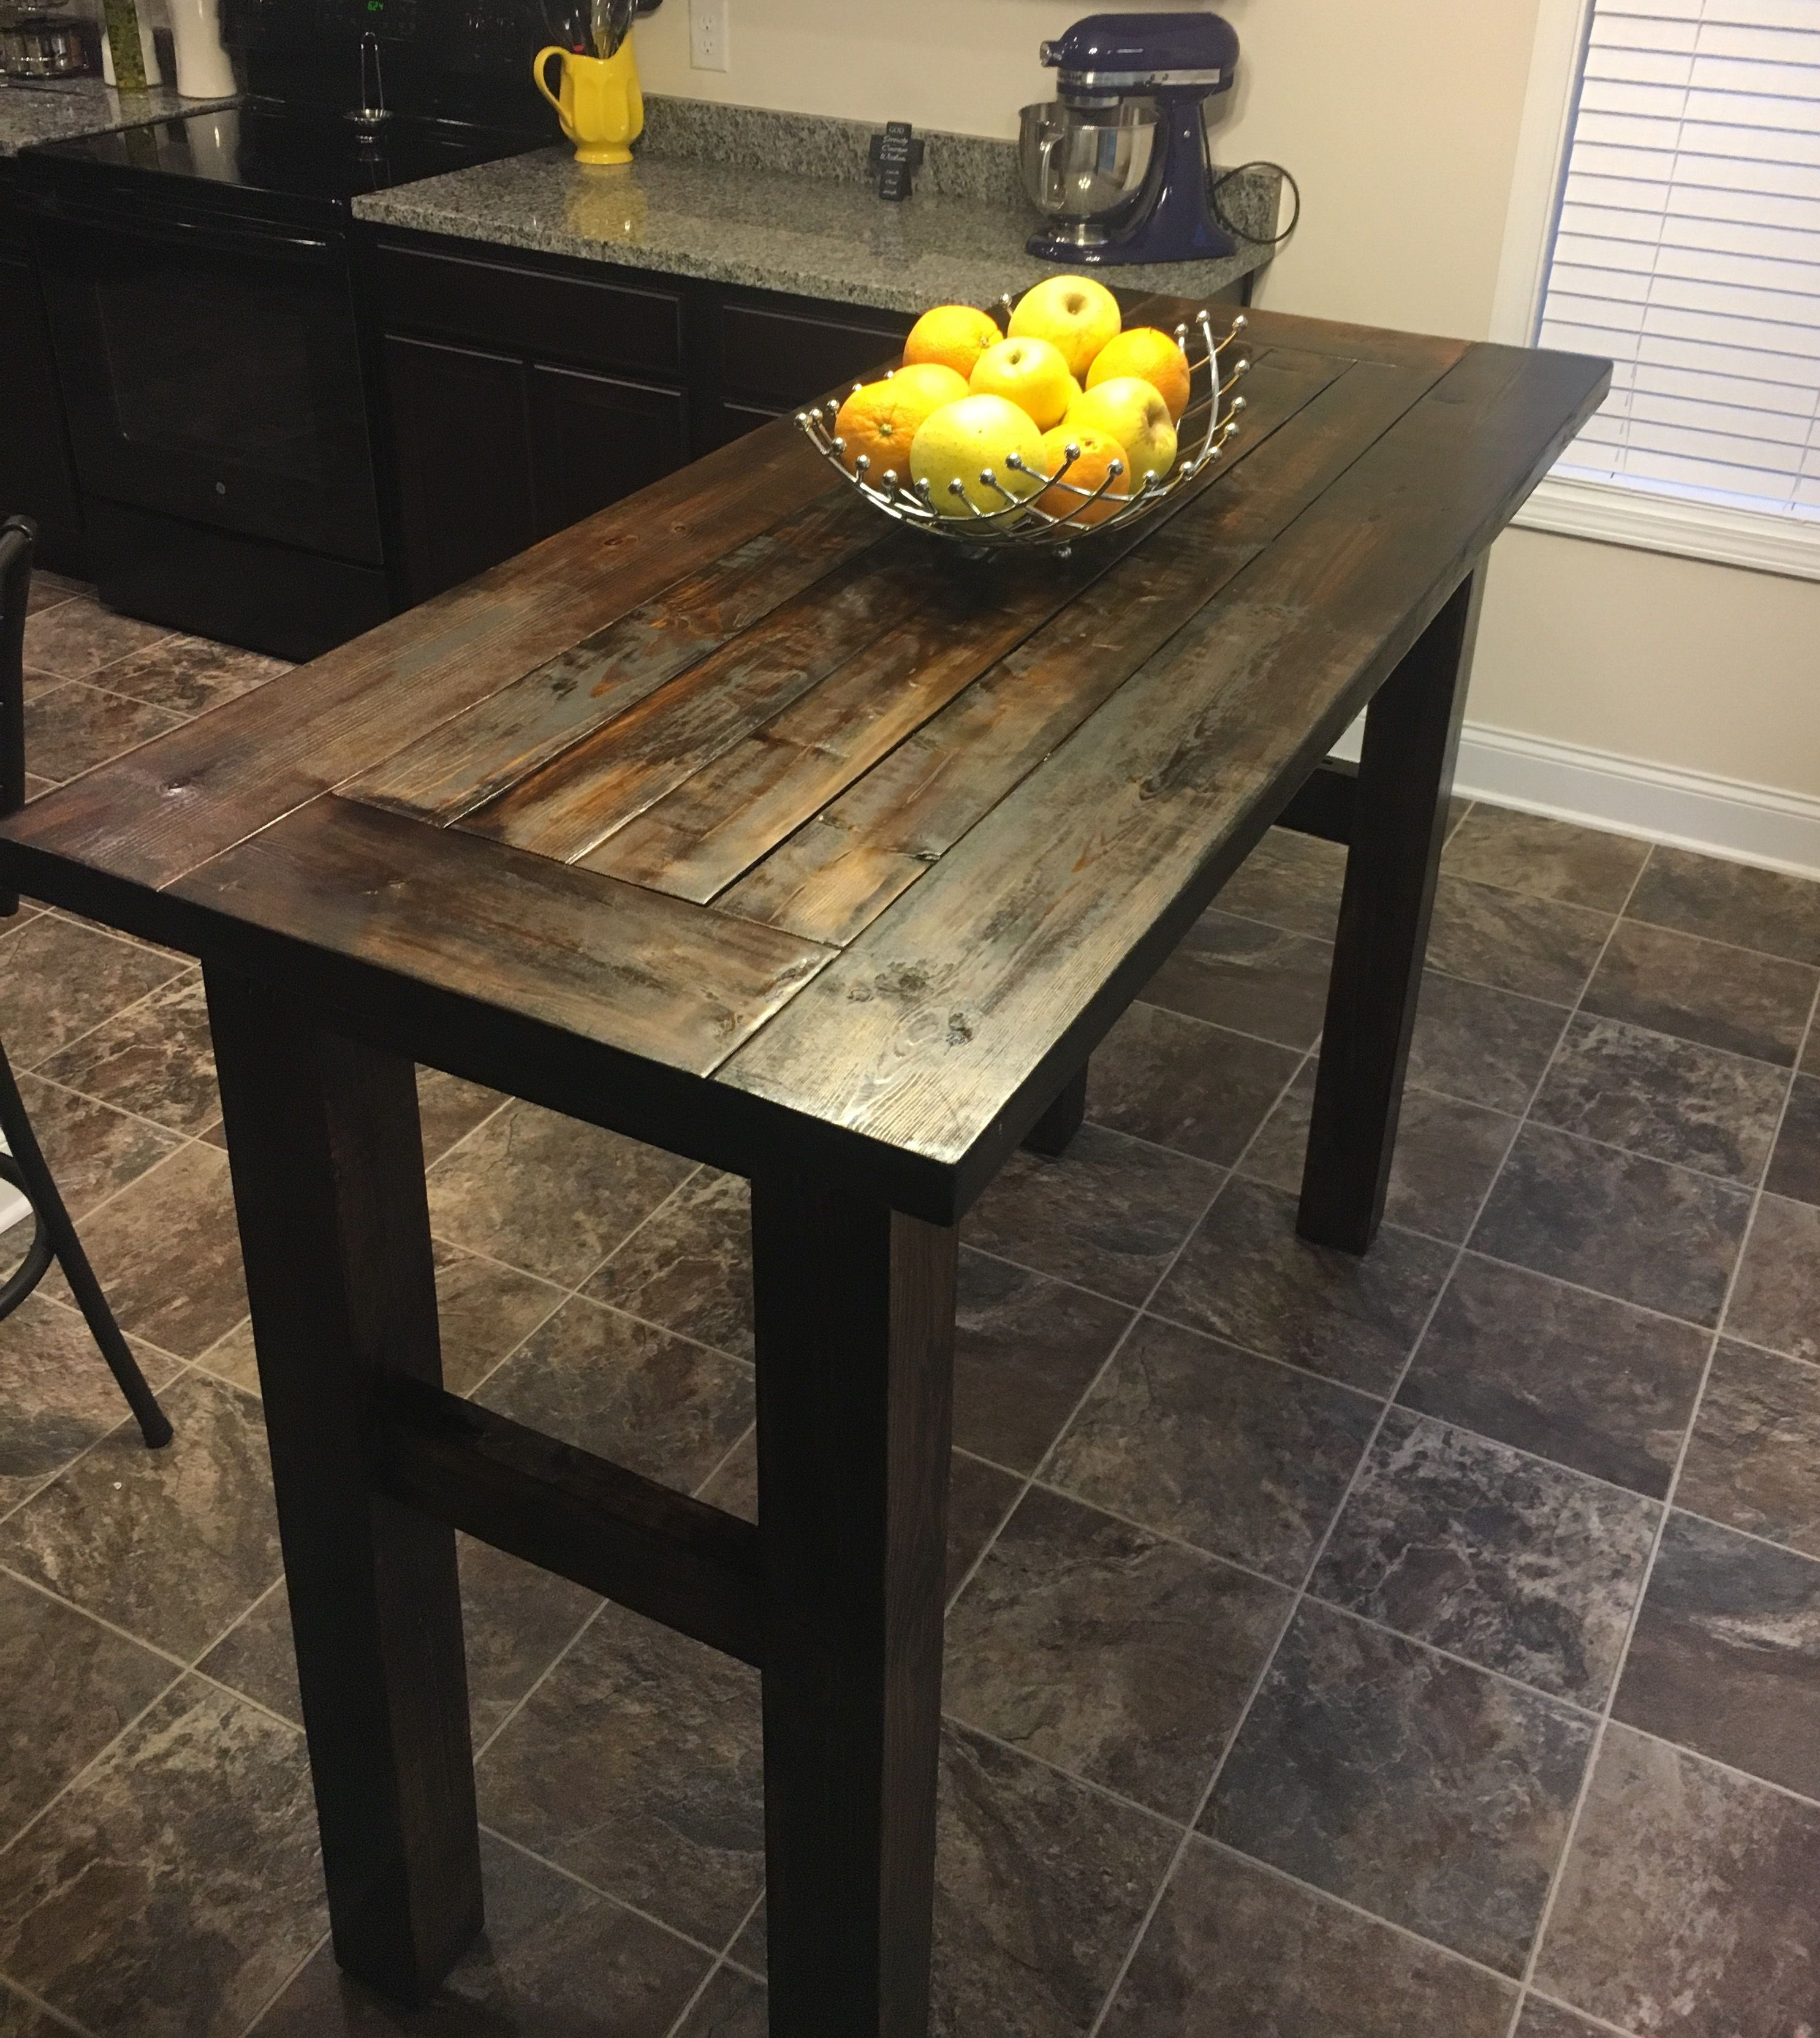 super simple pub table  43   high 60   long and 30   wide super simple pub table  43   high 60   long and 30   wide  using 2      rh   pinterest com